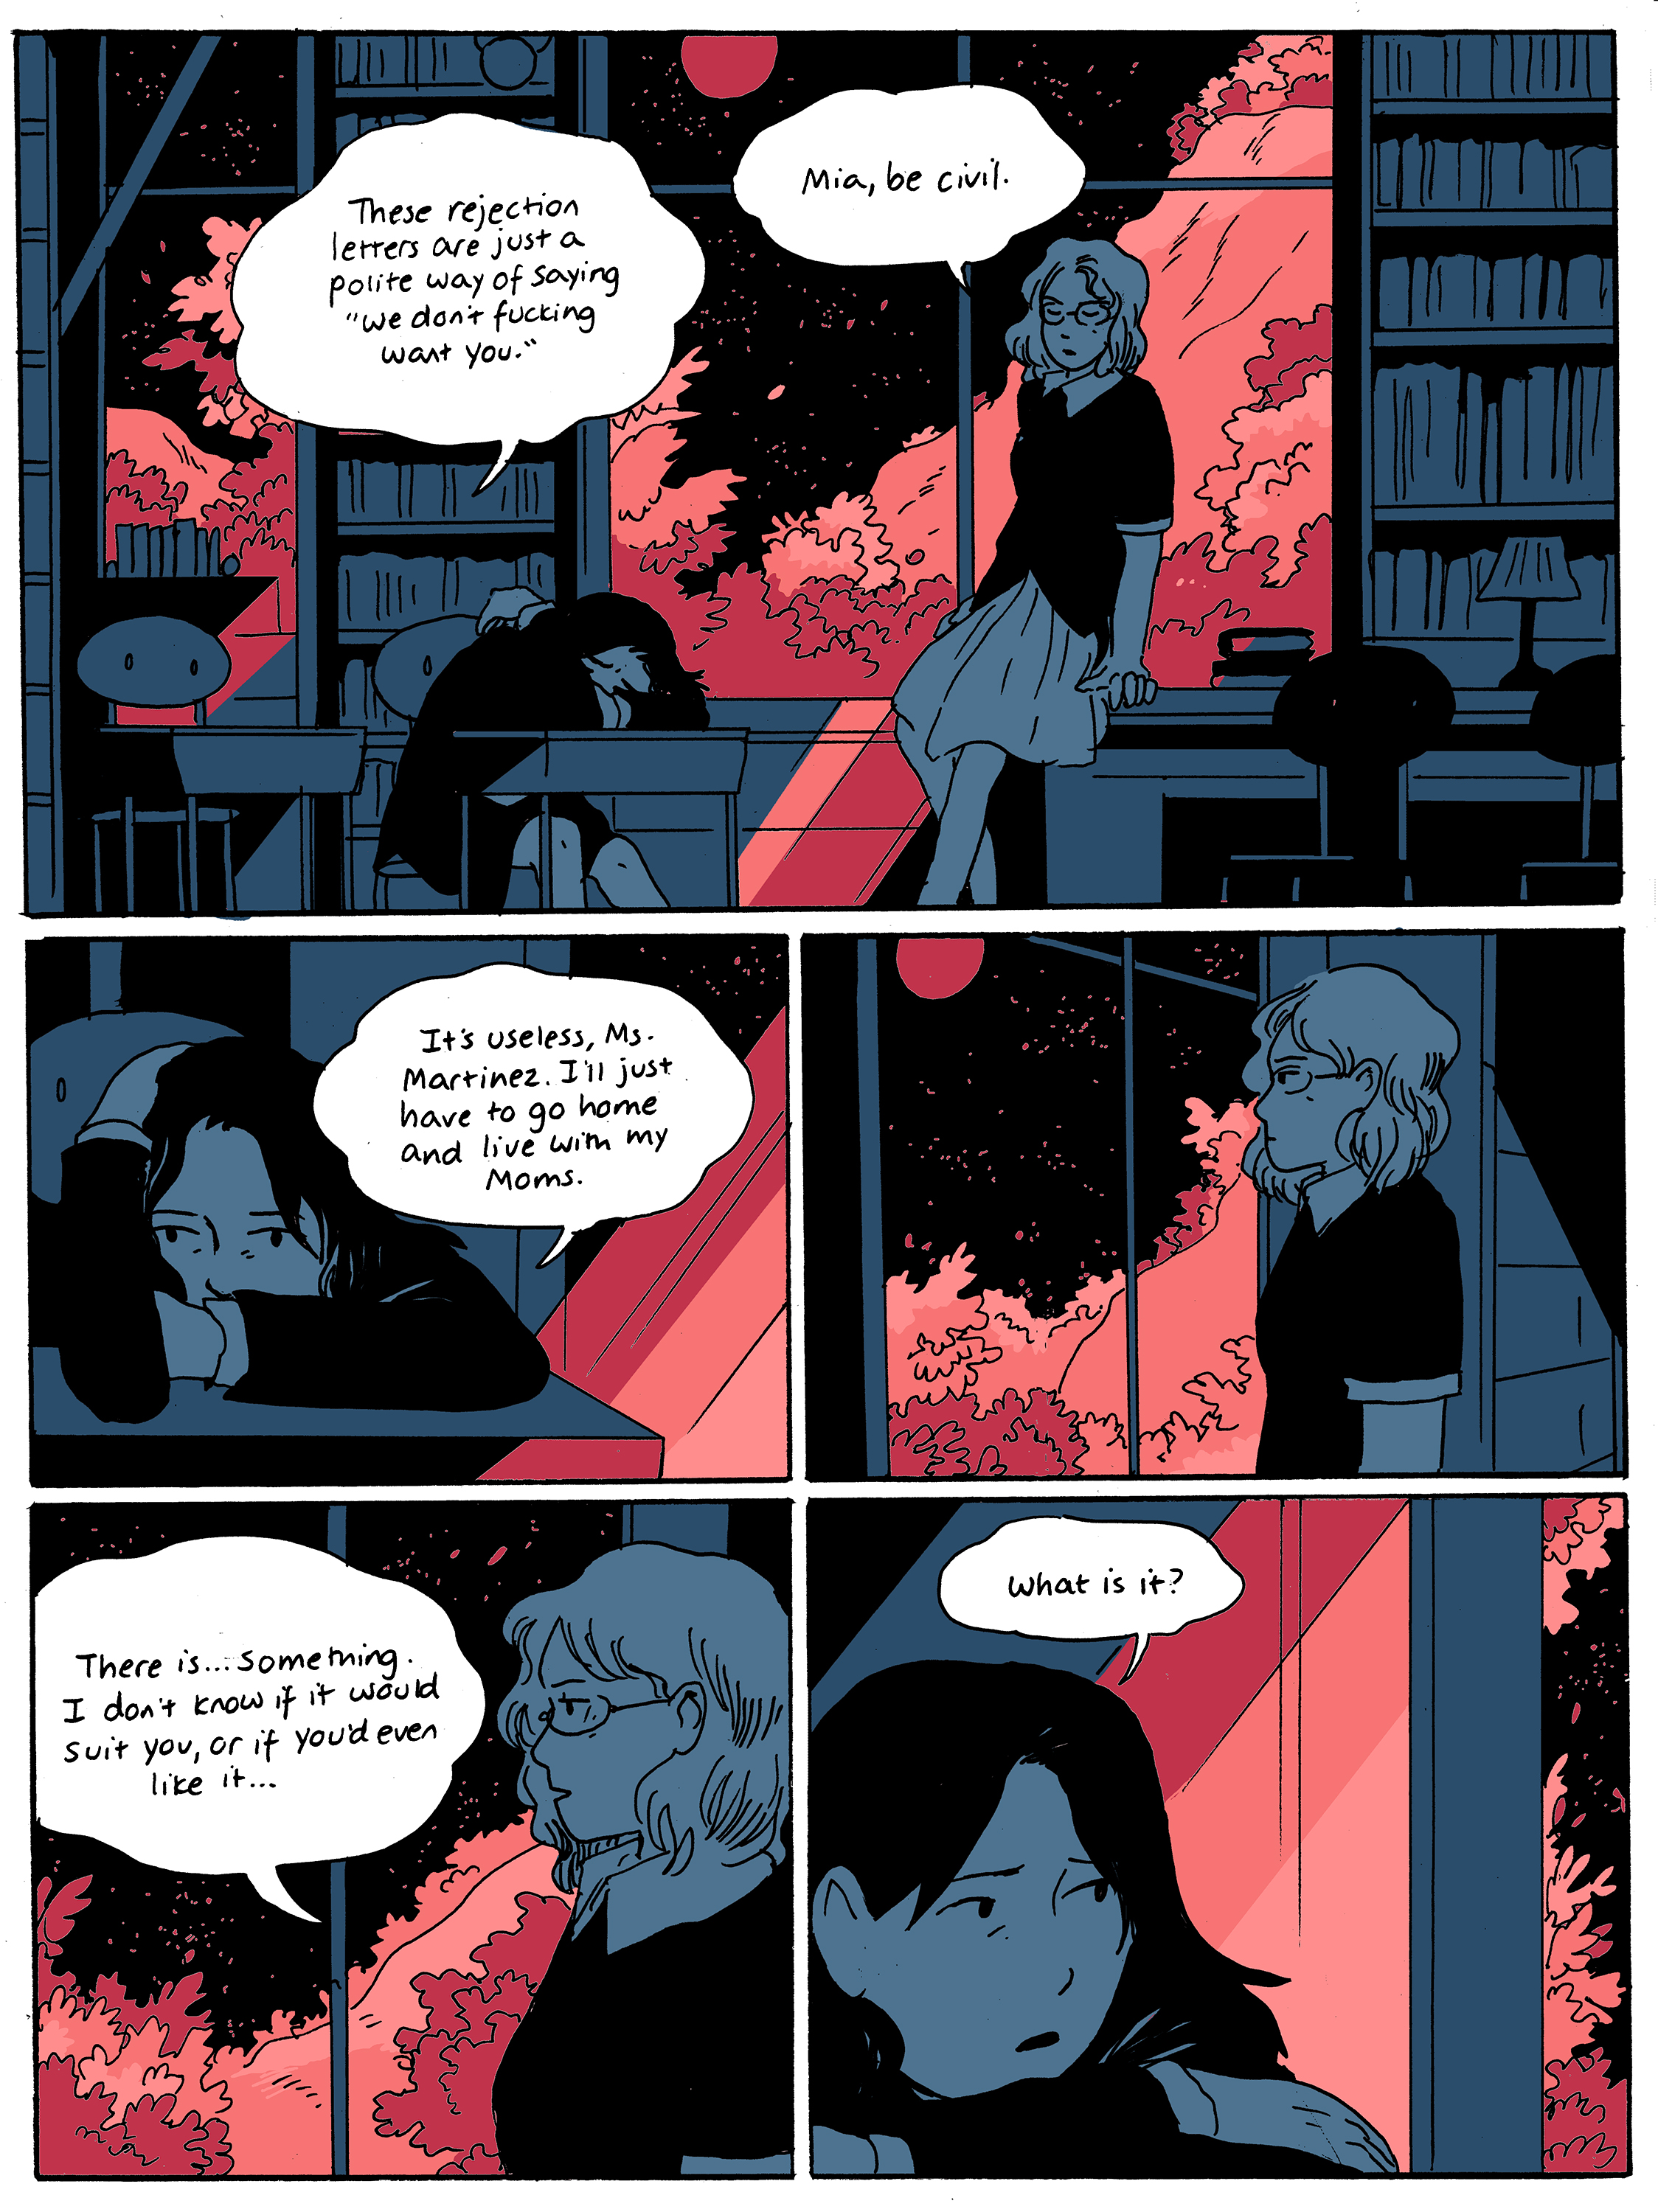 chapter13_page21.jpg